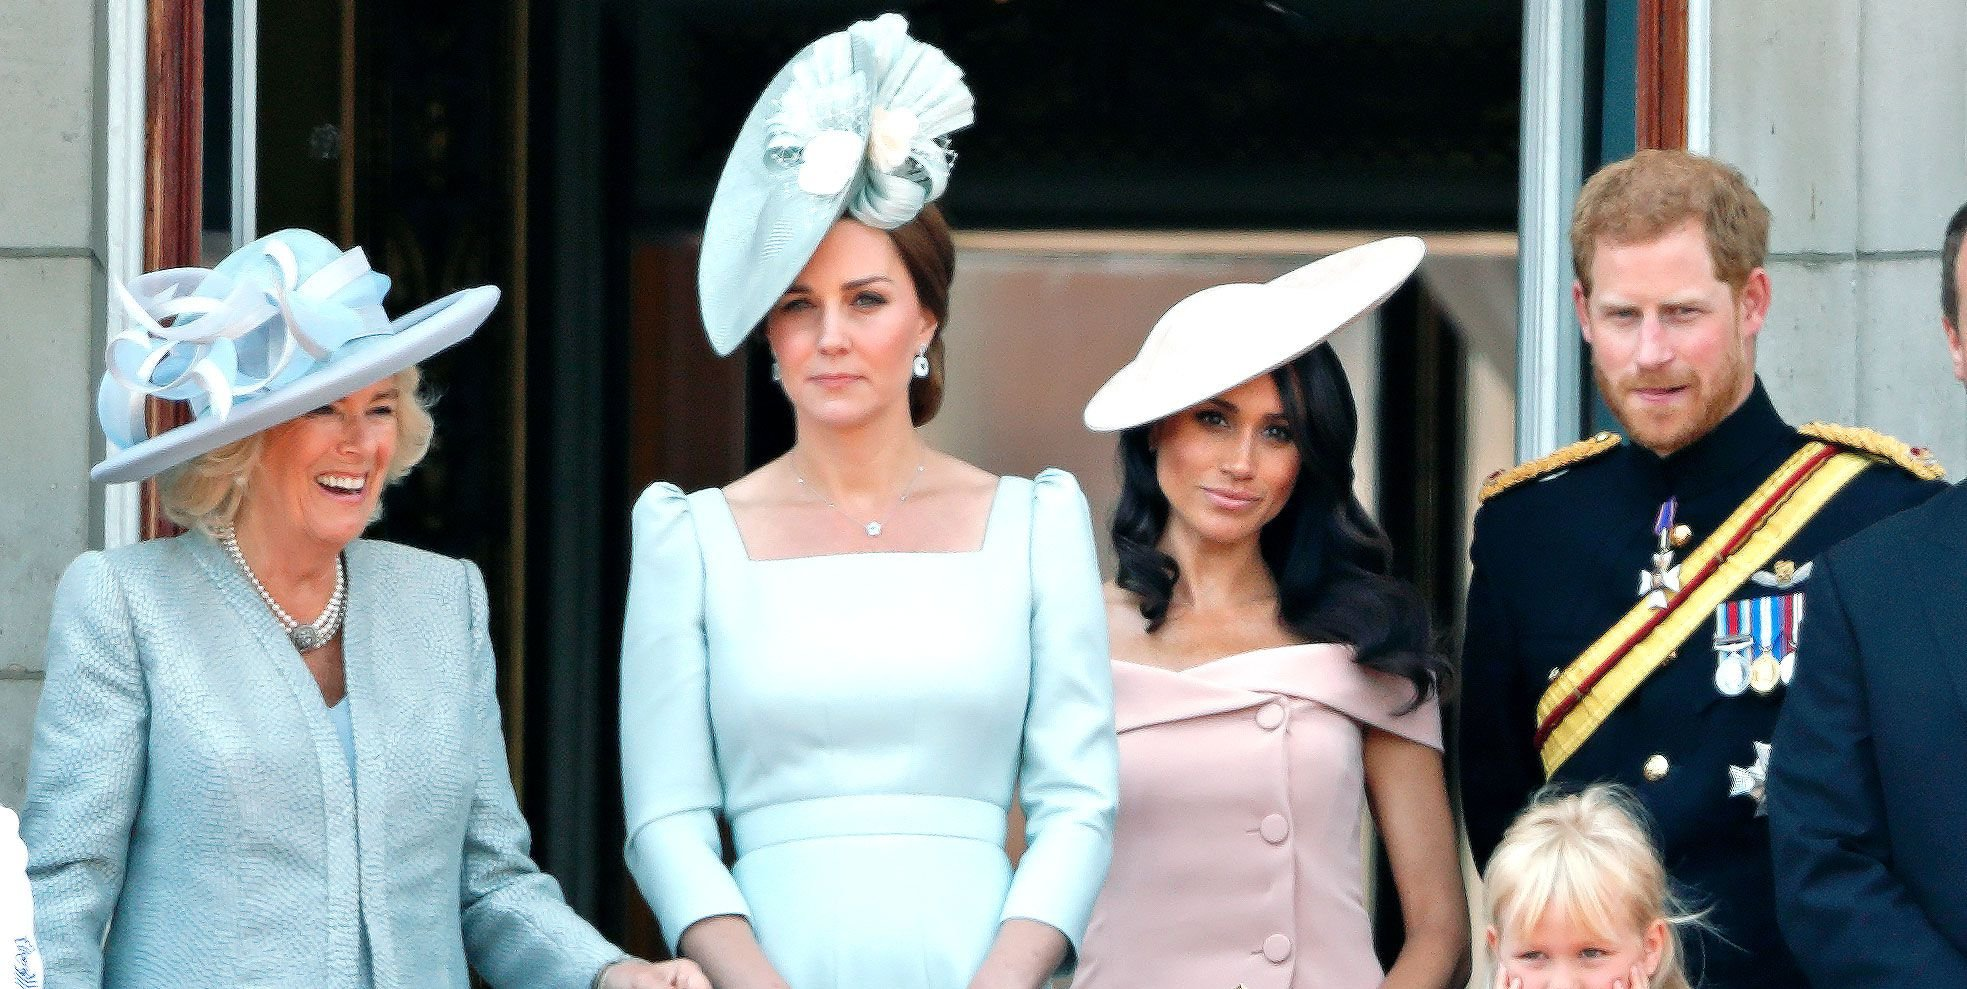 The Weird Reason Why Meghan Markle Had to Stand Behind Kate Middleton at Trooping the Colour